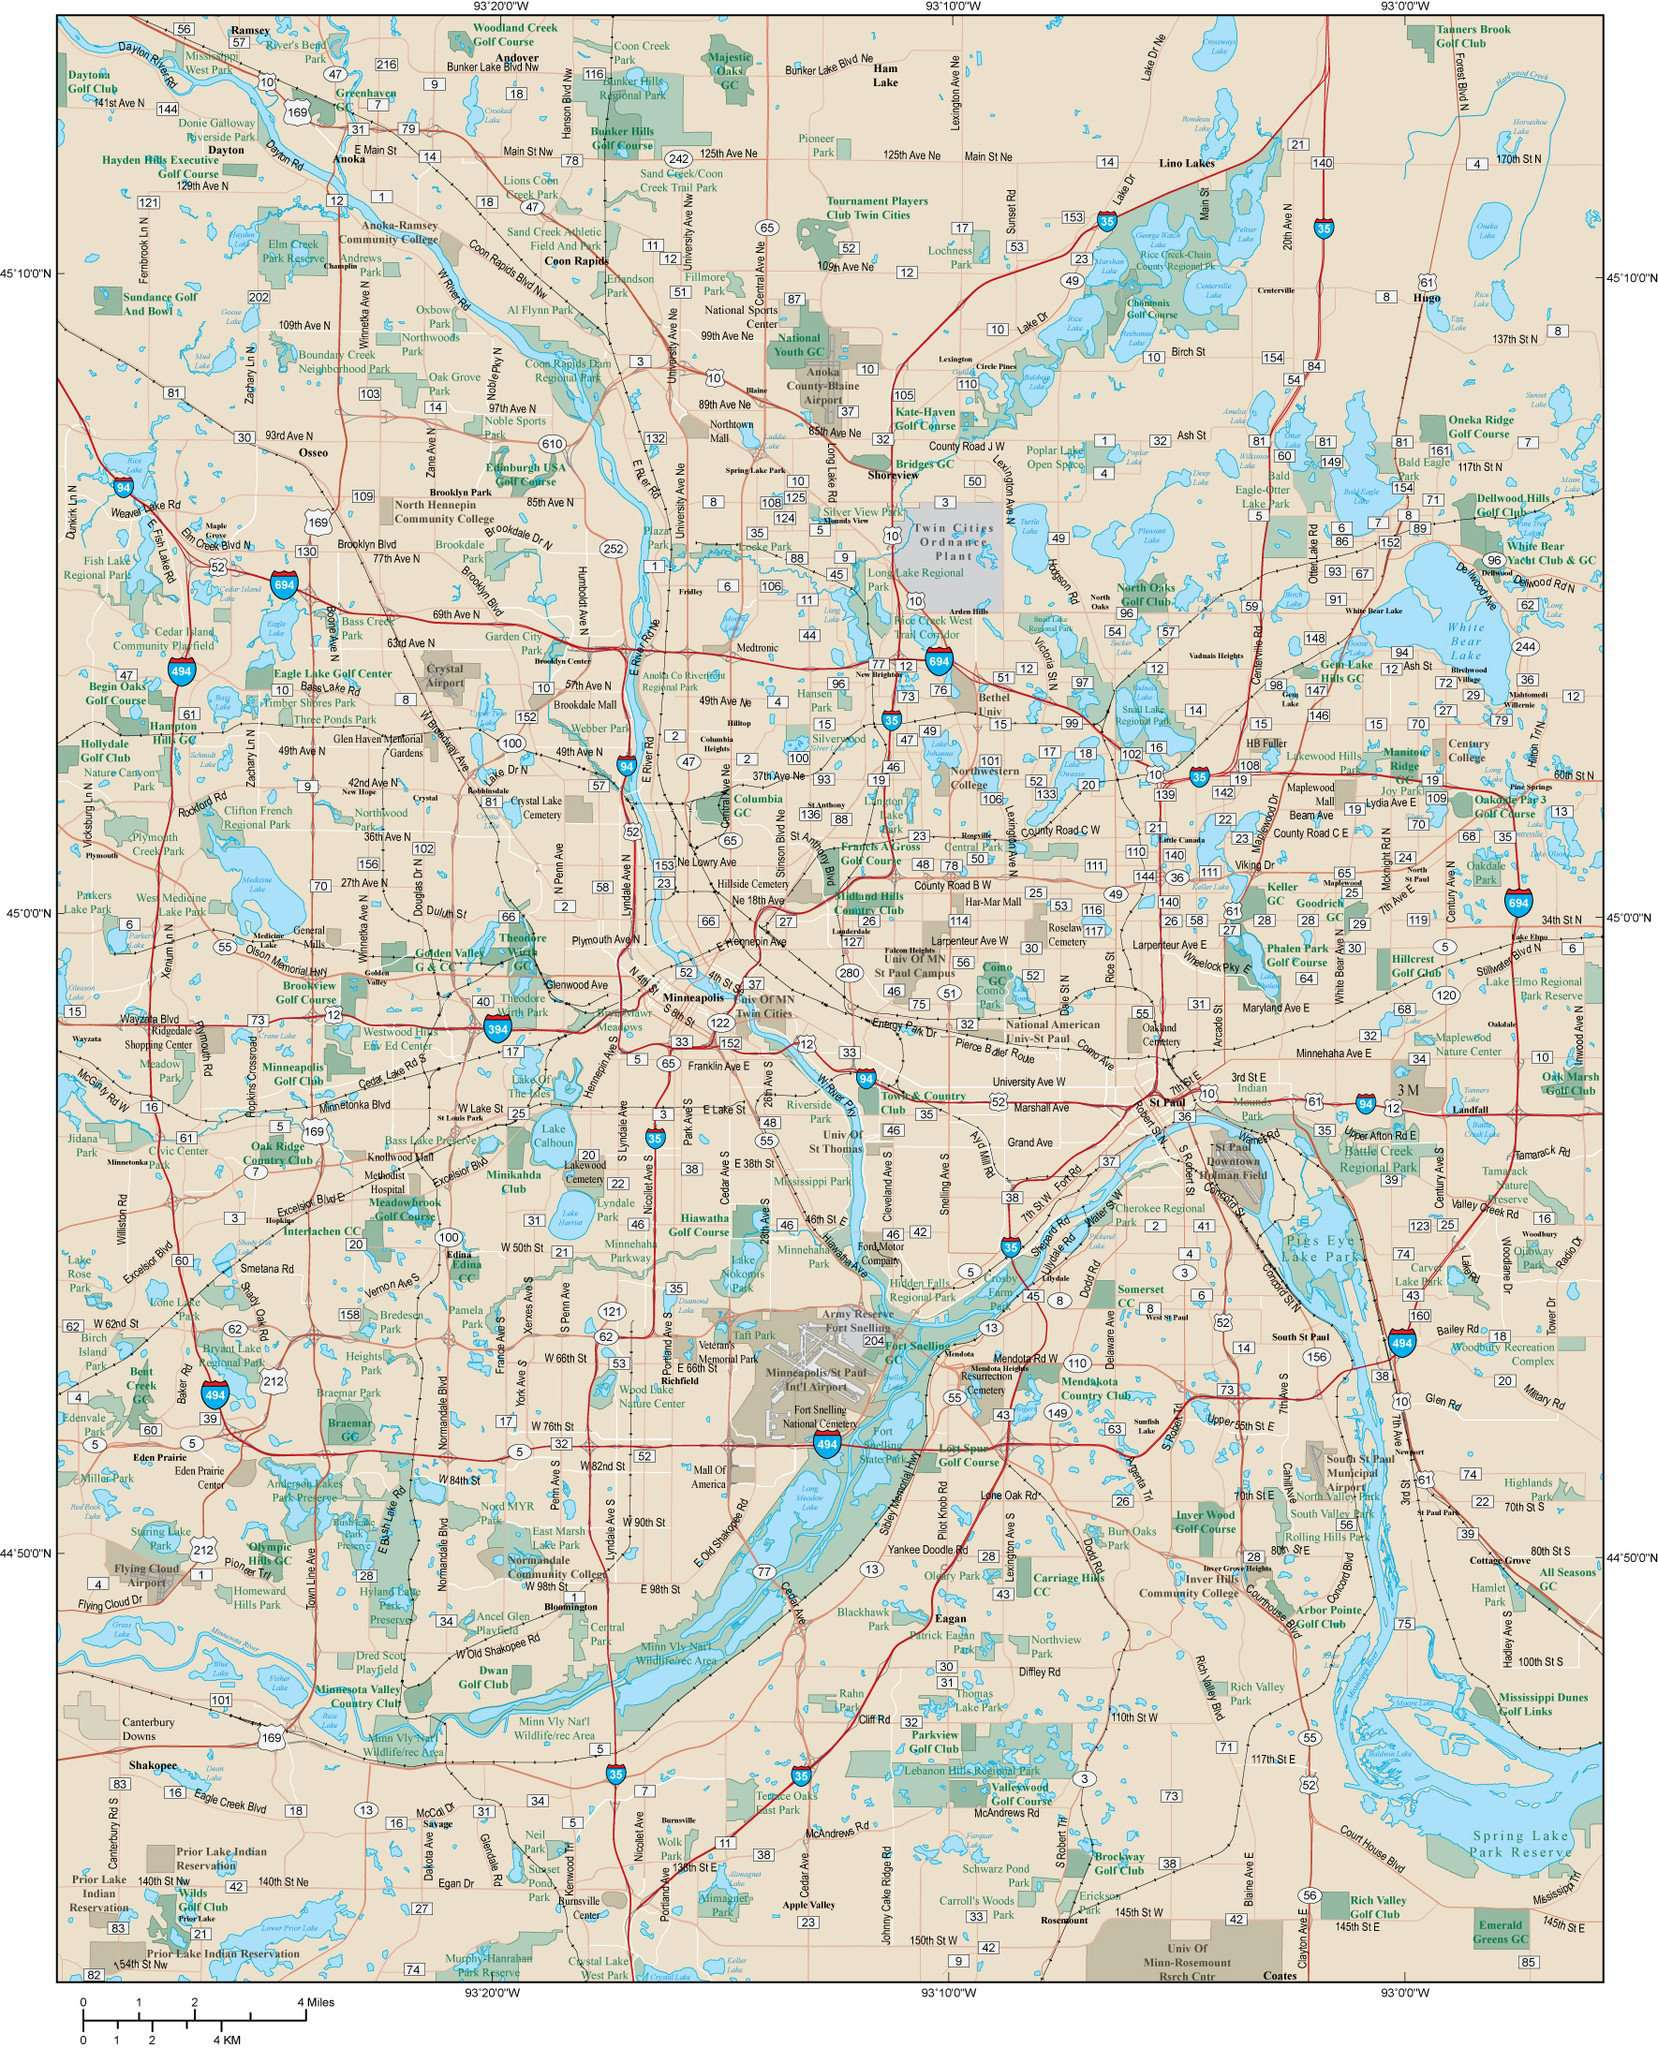 Minneapolis MN and St. Paul MN Map - Twin Cities Metro Area - 980 square  miles - with Major Roads